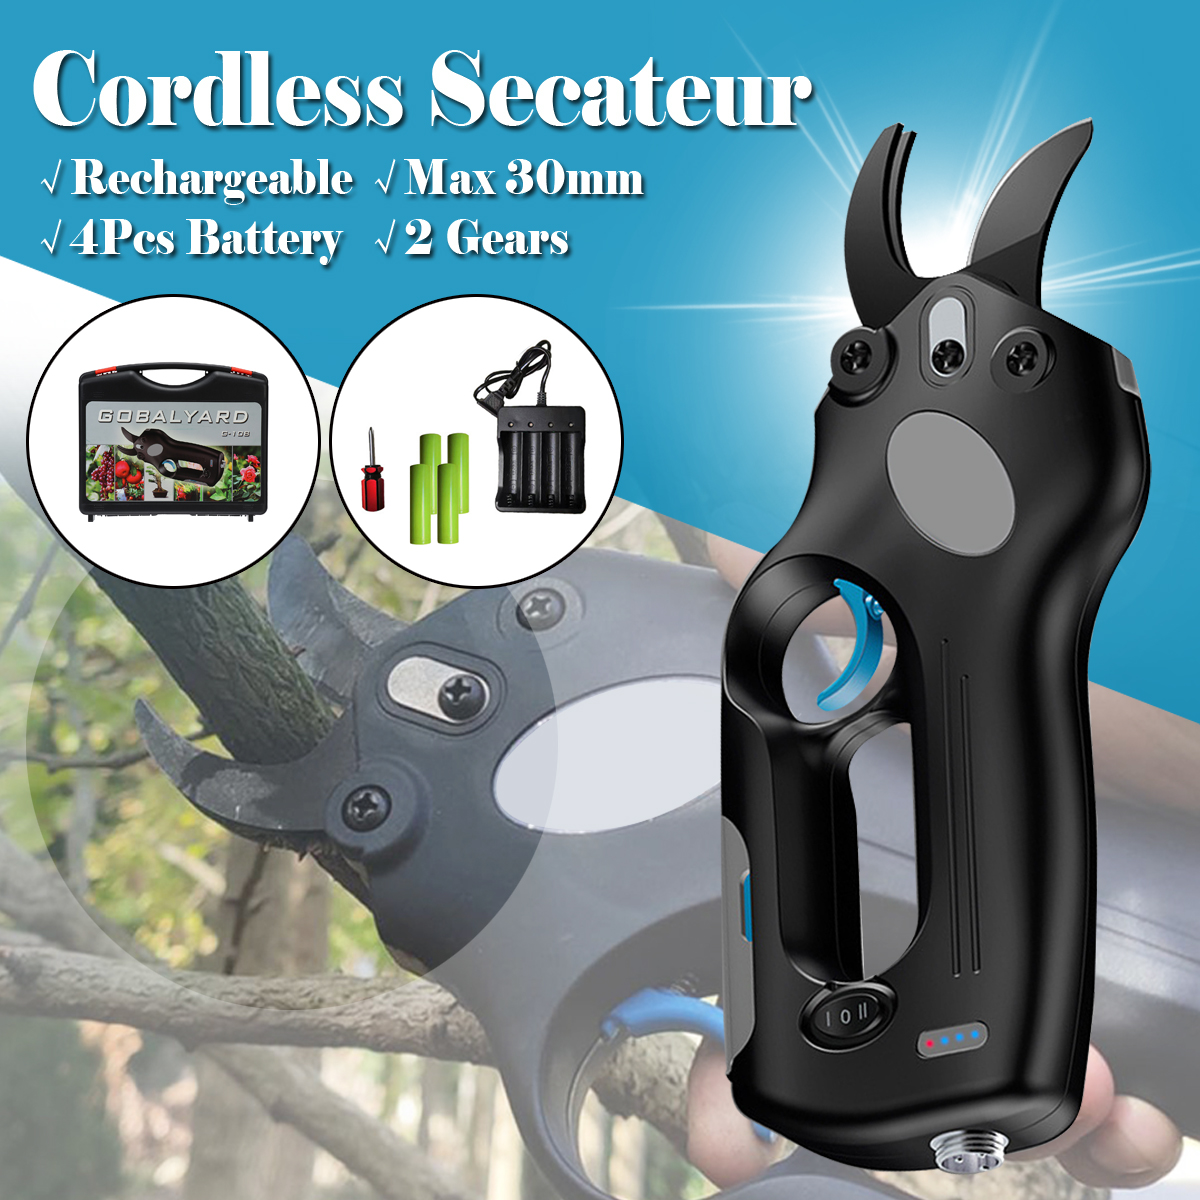 12V Wireless Electric Rechargeable Garden Scissors for Pruning Branches and stems with 4 Li-ion Battery 4